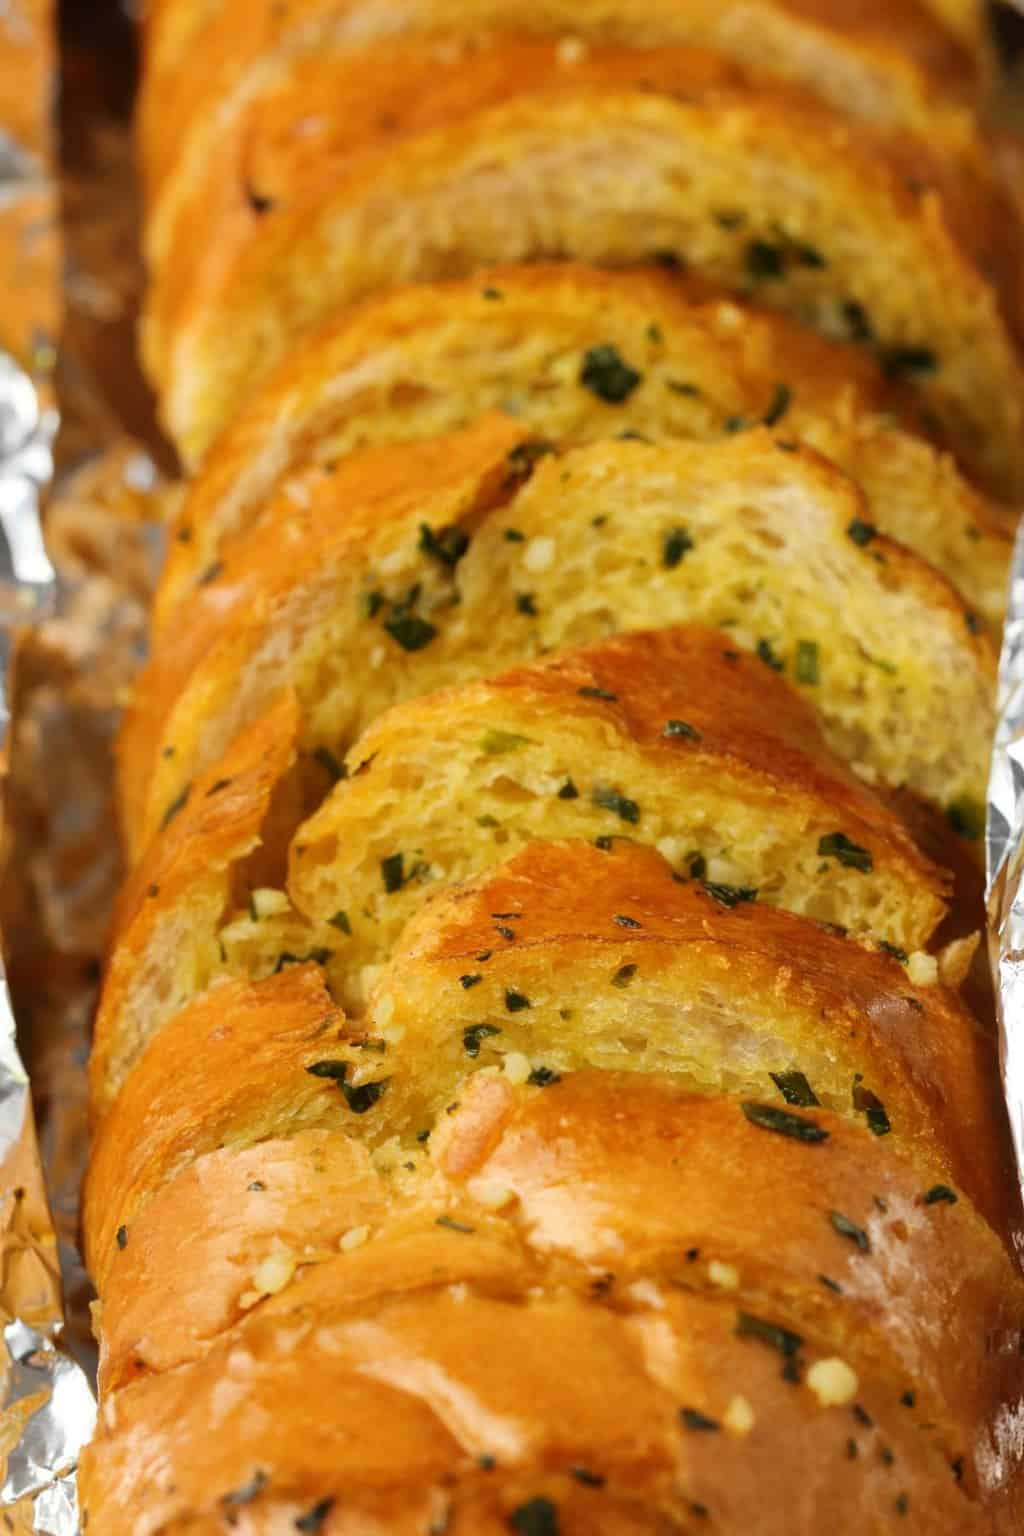 Freshly baked vegan garlic bread in tinfoil.